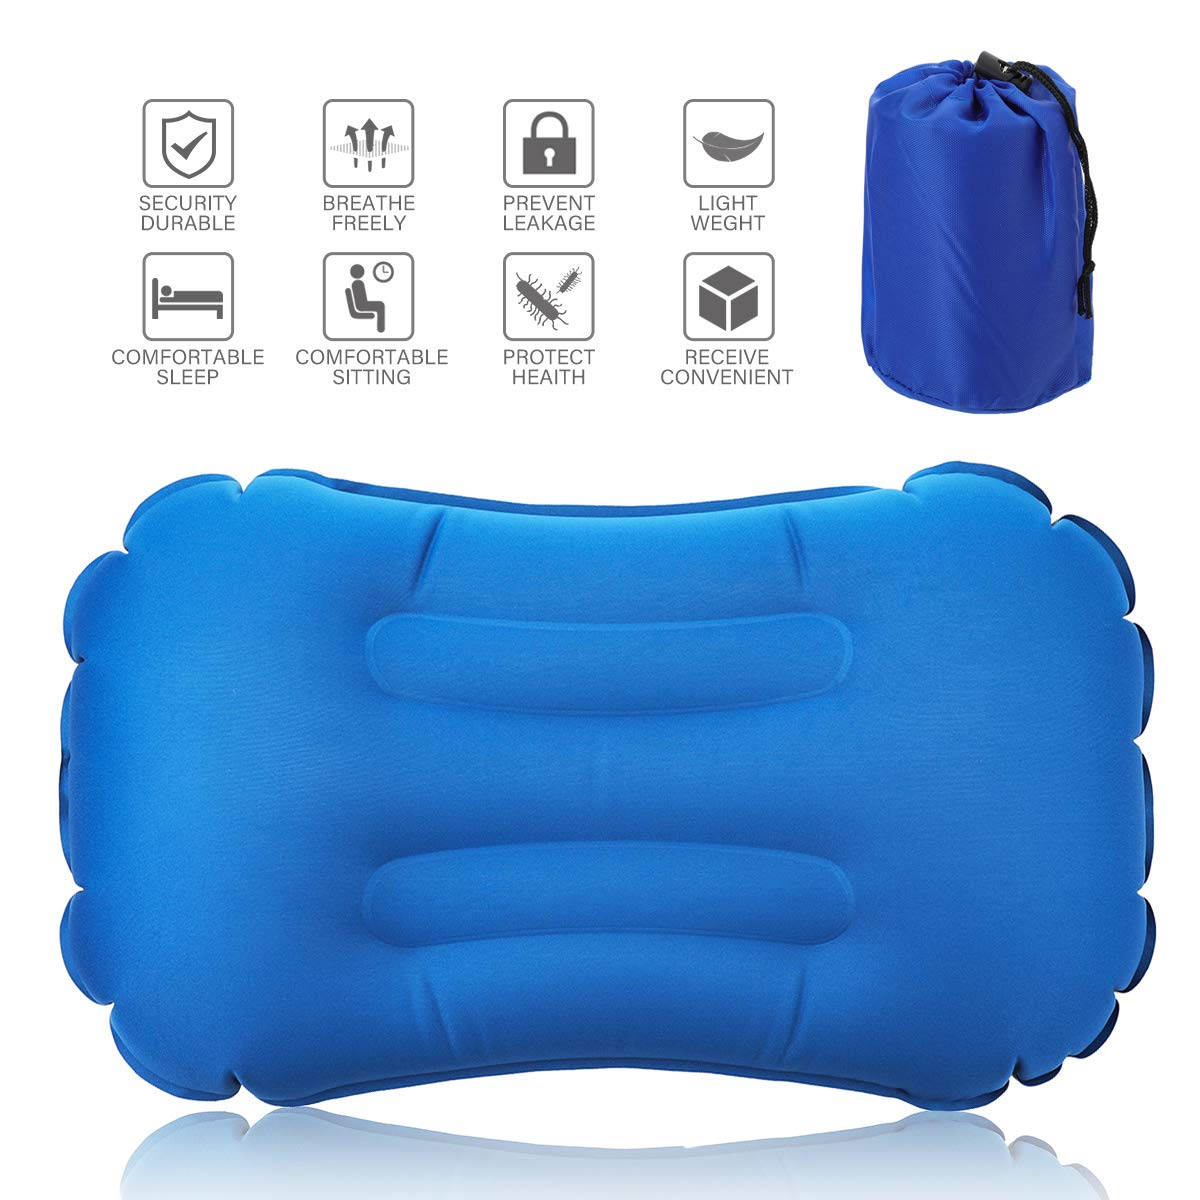 Inflatable Camping Pillow,CAMTOA Inflating Pillow,Blow Up Pillow,Air Pillow-Ultralight Compressible,Ergonomic,Soft Fabric,Comfortable,Portable with Storage Bag Portable for Backpacking,Hiking,Traveling,Tent,Hammock,Airplane,Beach,Road Trips,Office